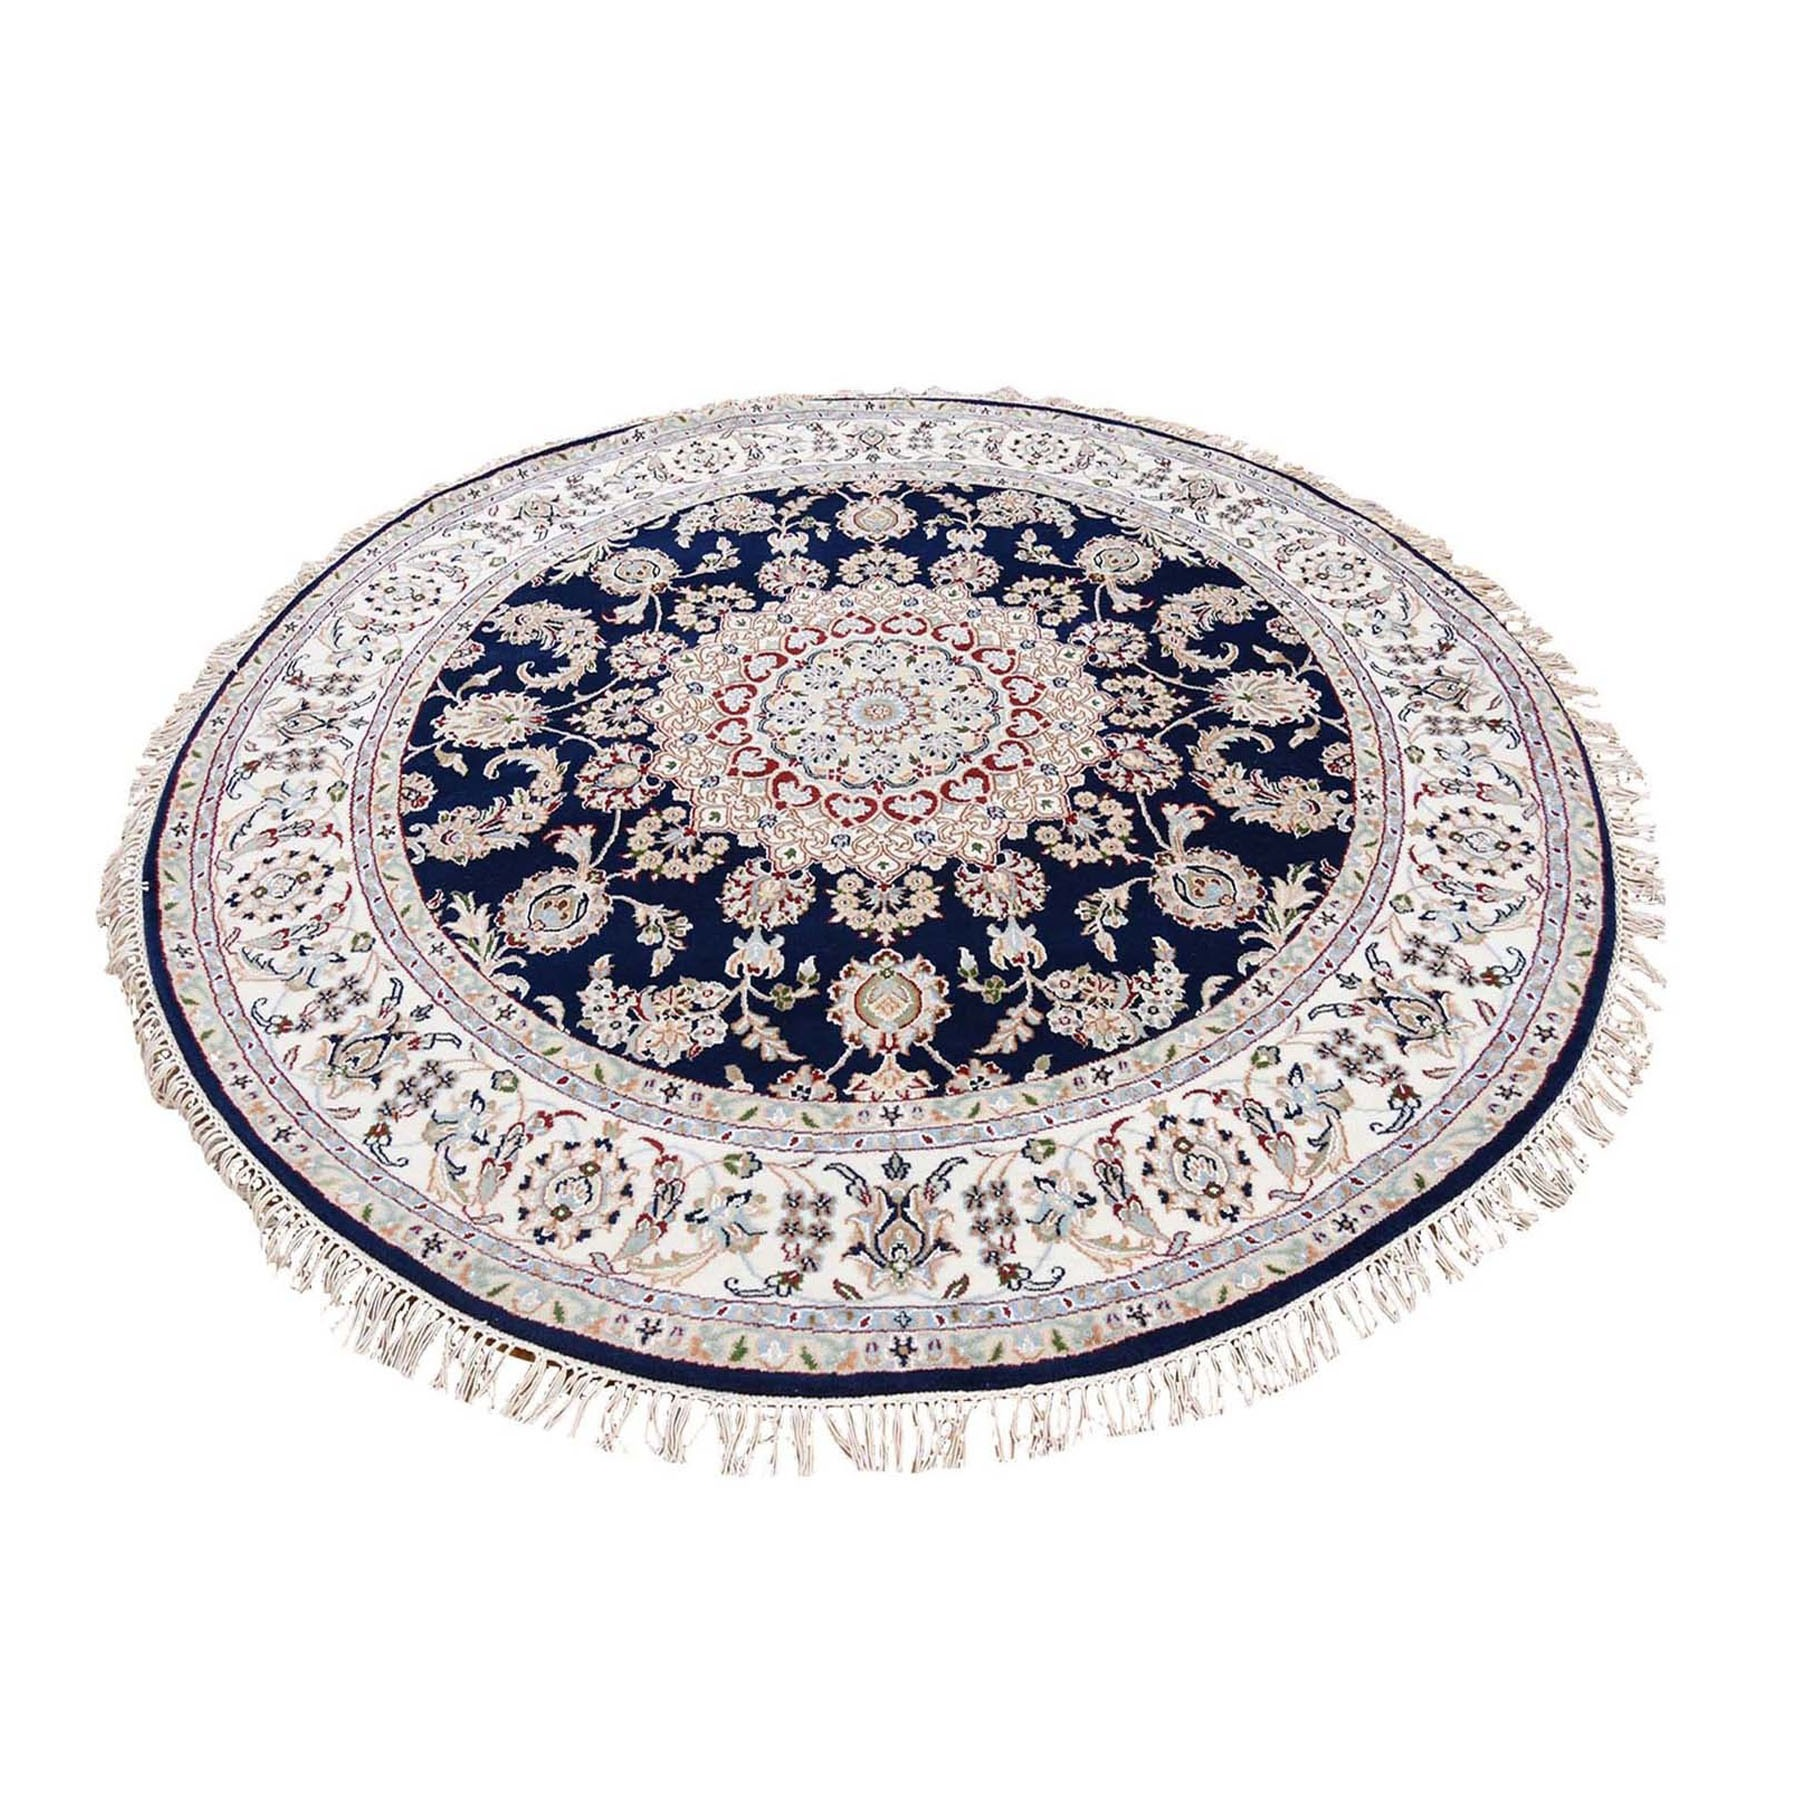 8'x8' Navy Blue Round Nain Wool And Silk 250 KPSI Hand Knotted Oriental Rug